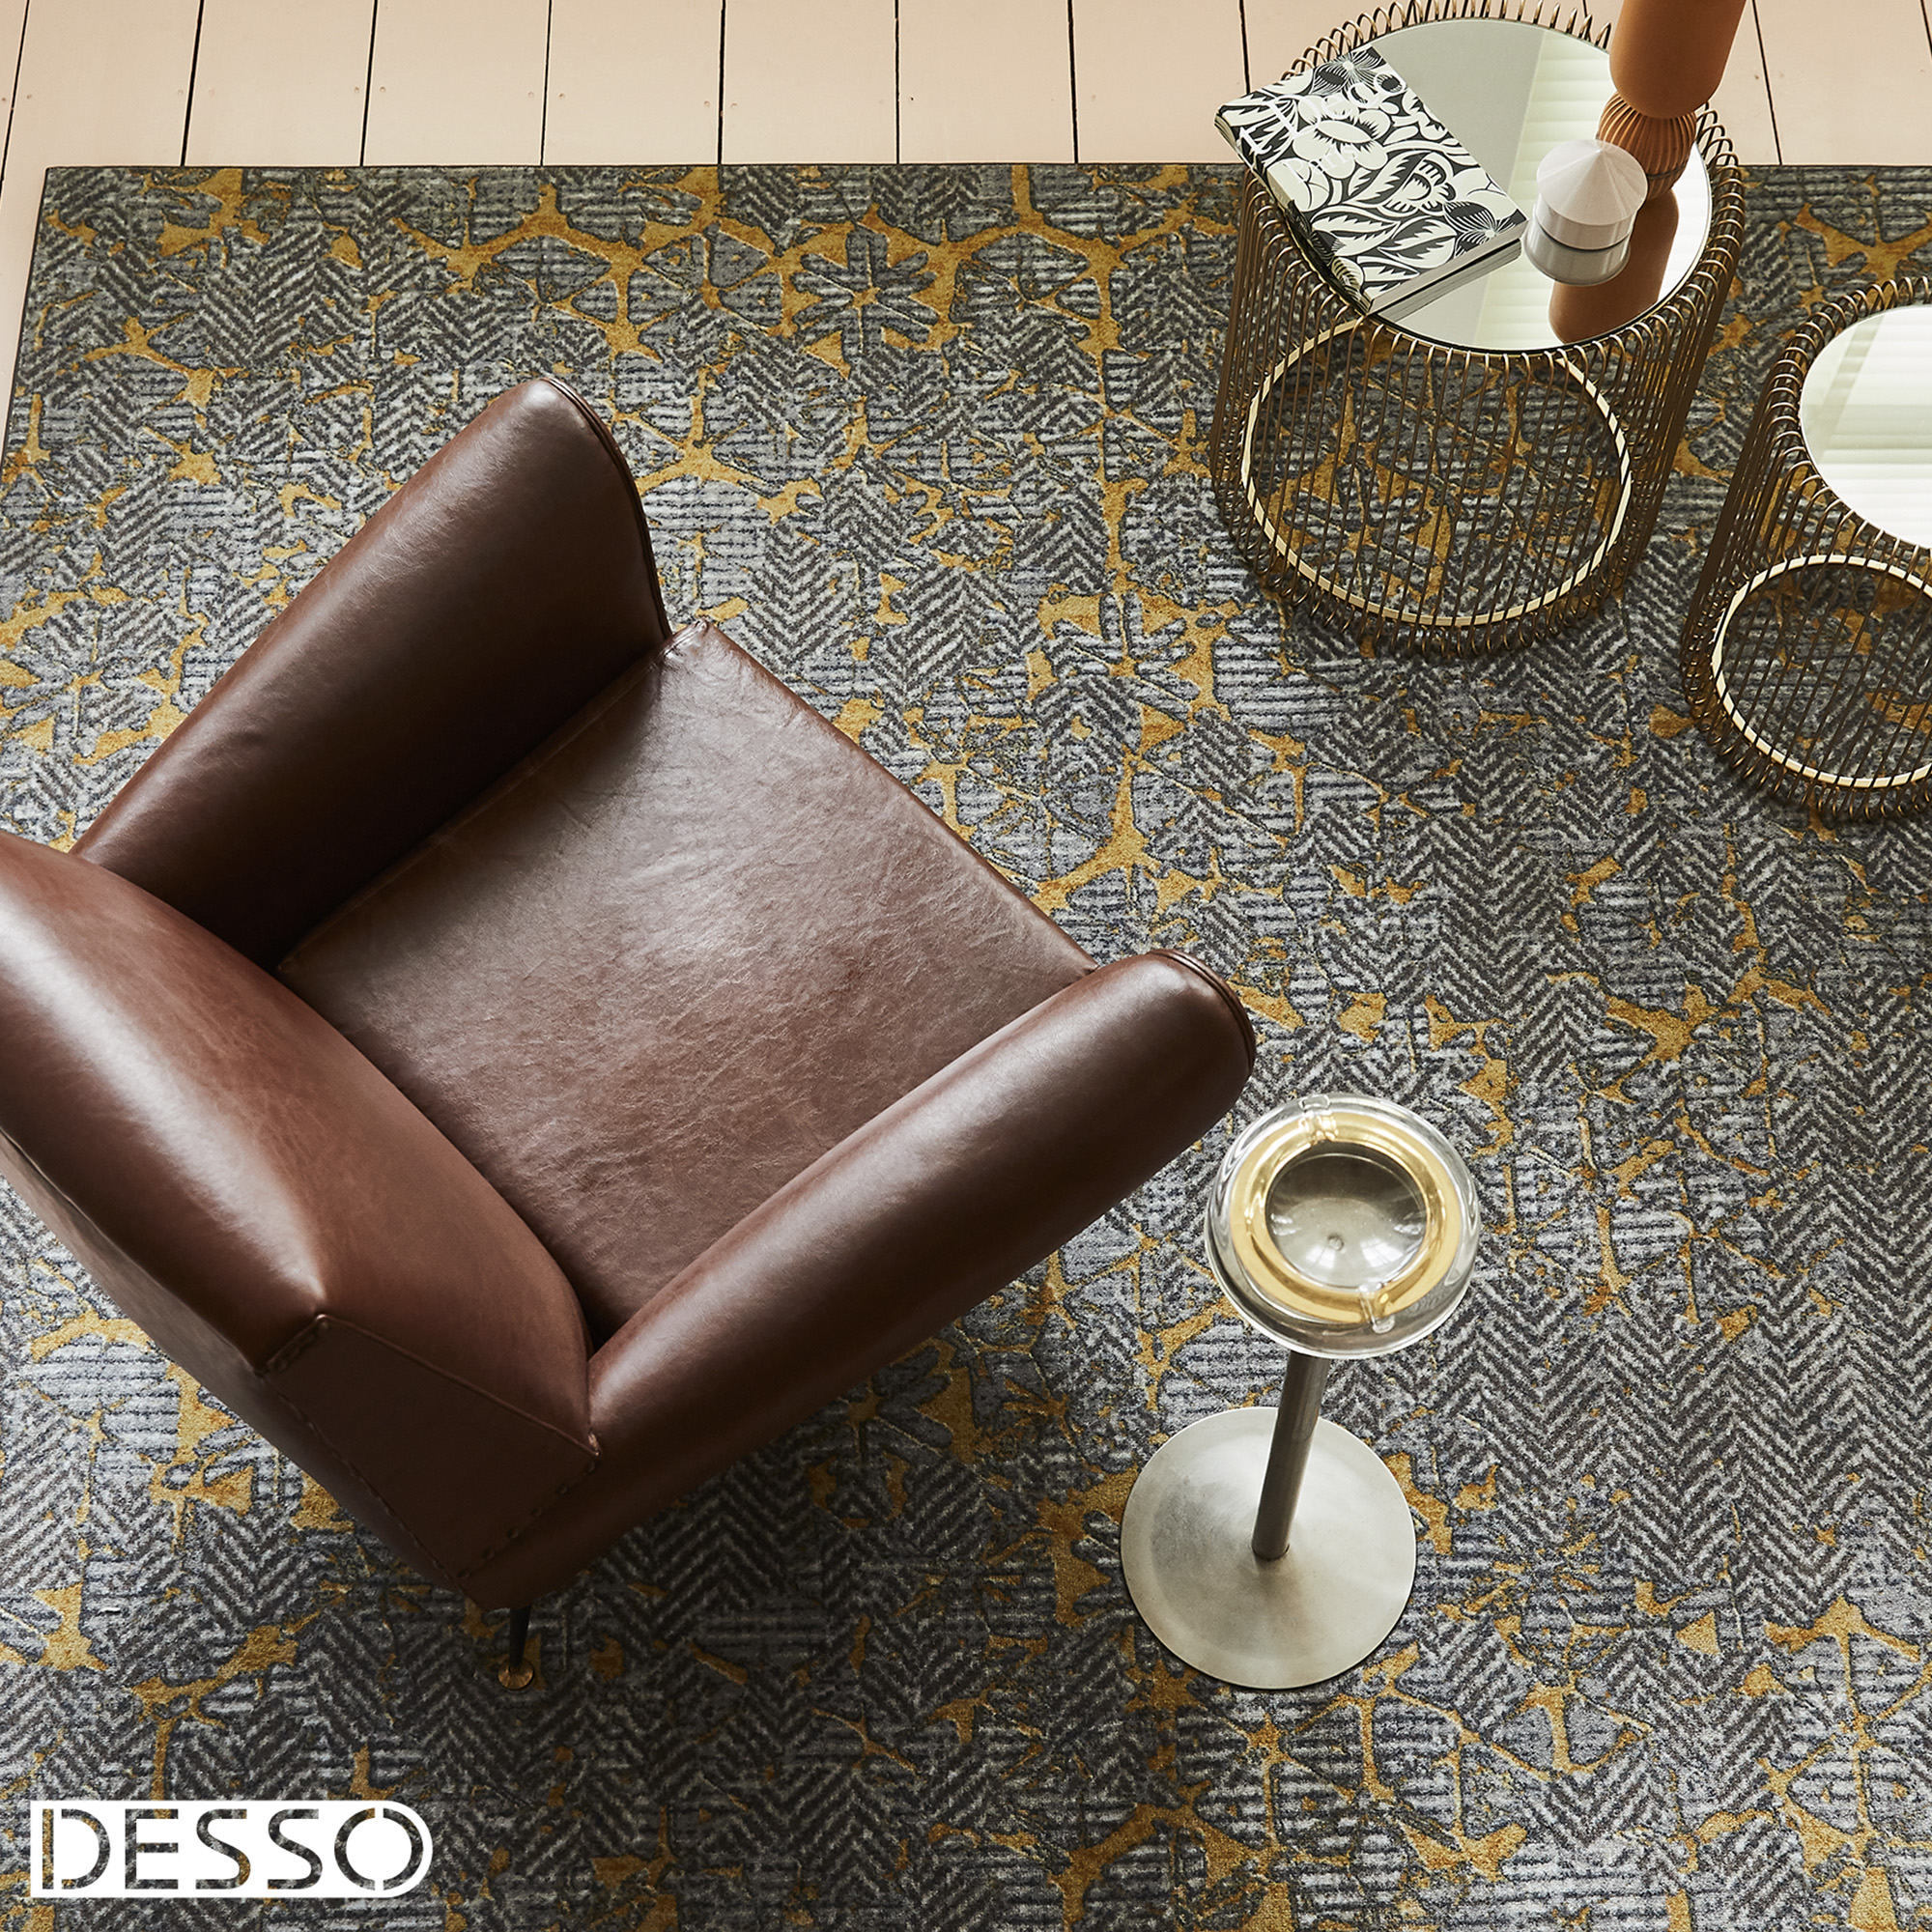 Vloerkleed Desso Art Deco 9533